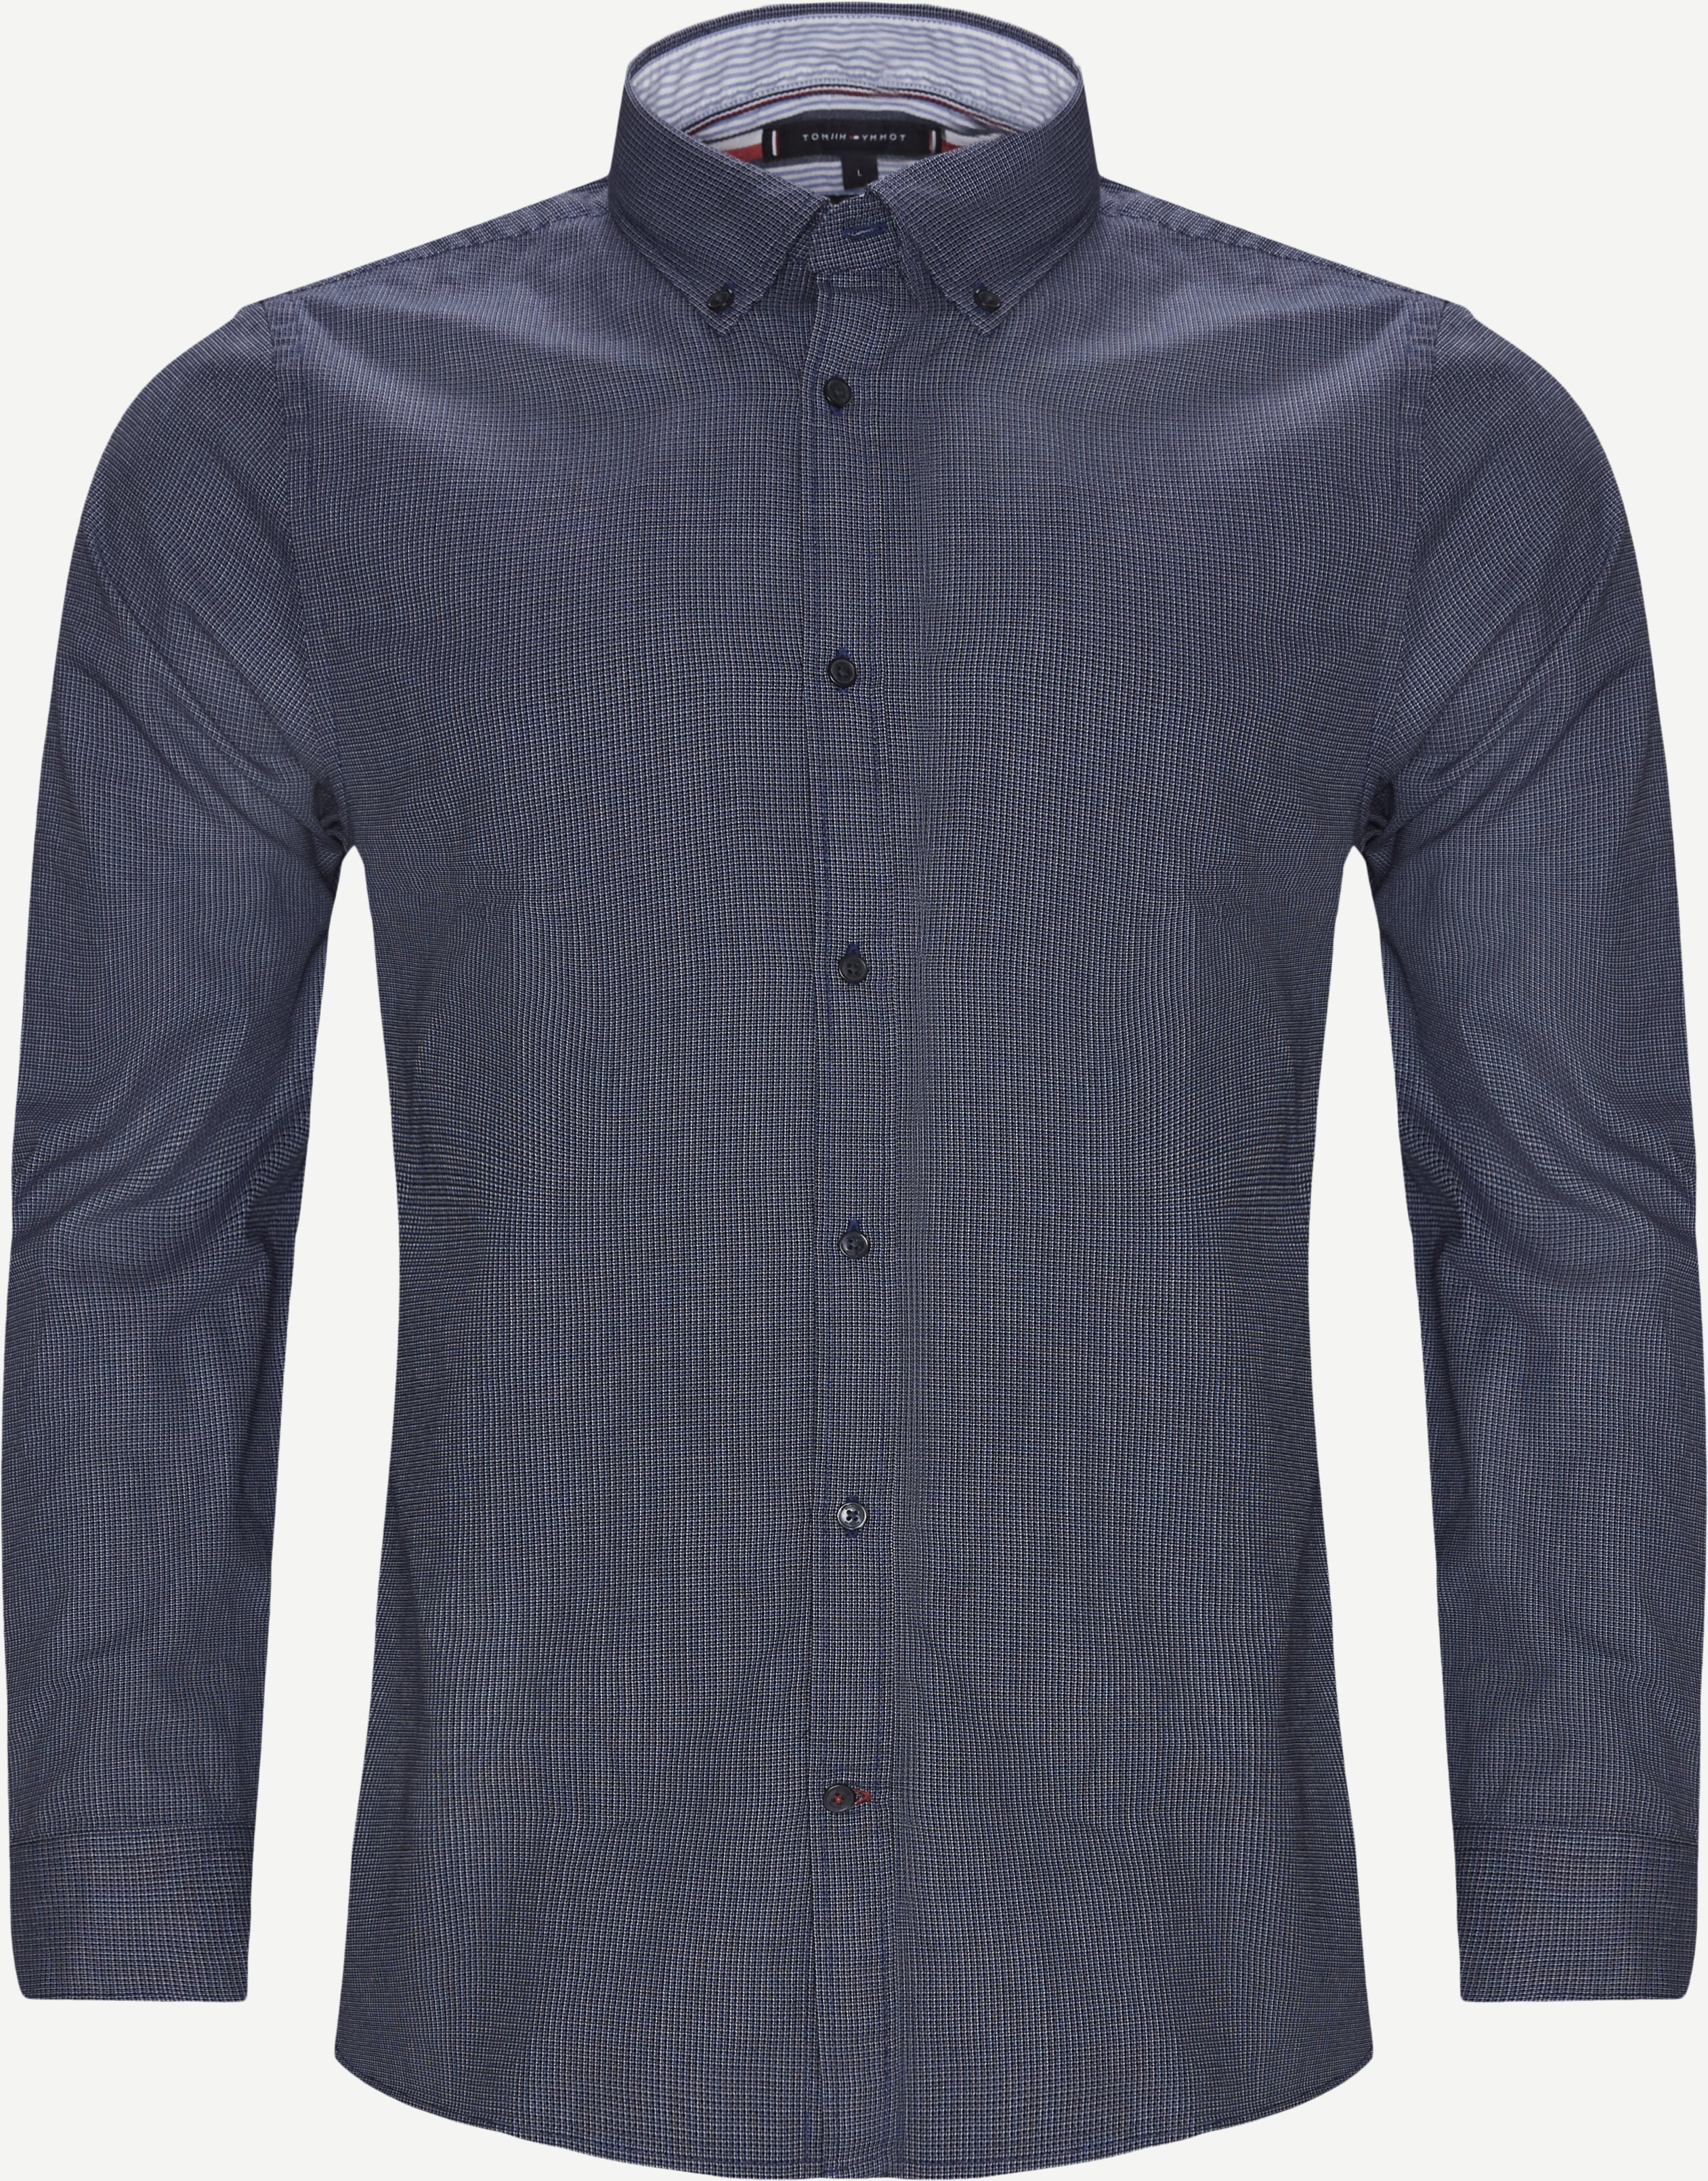 Textured Multi Dobby Shirt - Shirts - Slim - Blue